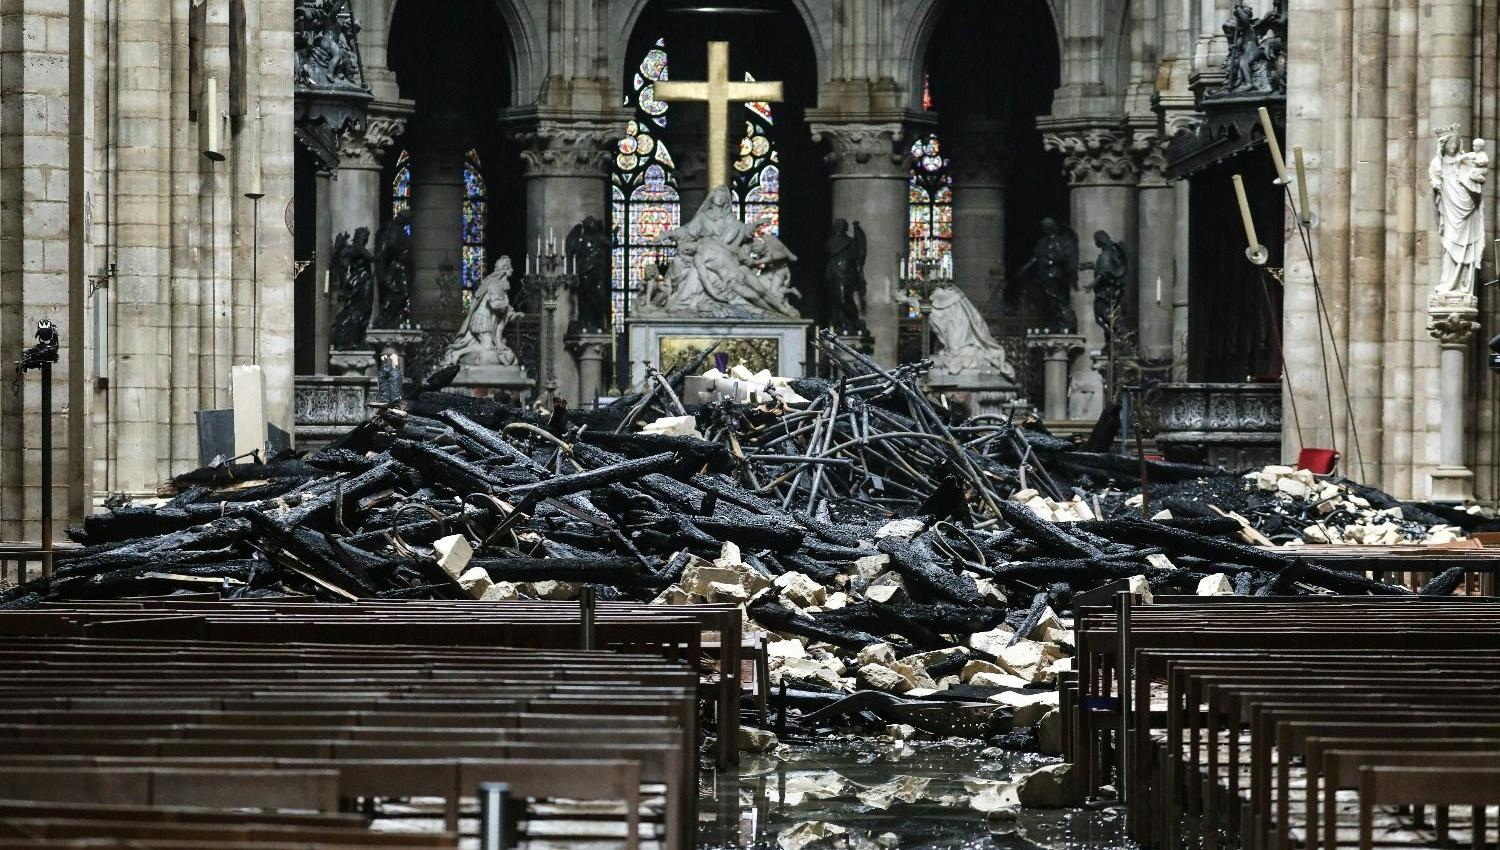 Video: The statue of the Virgin Mary remained after the fire